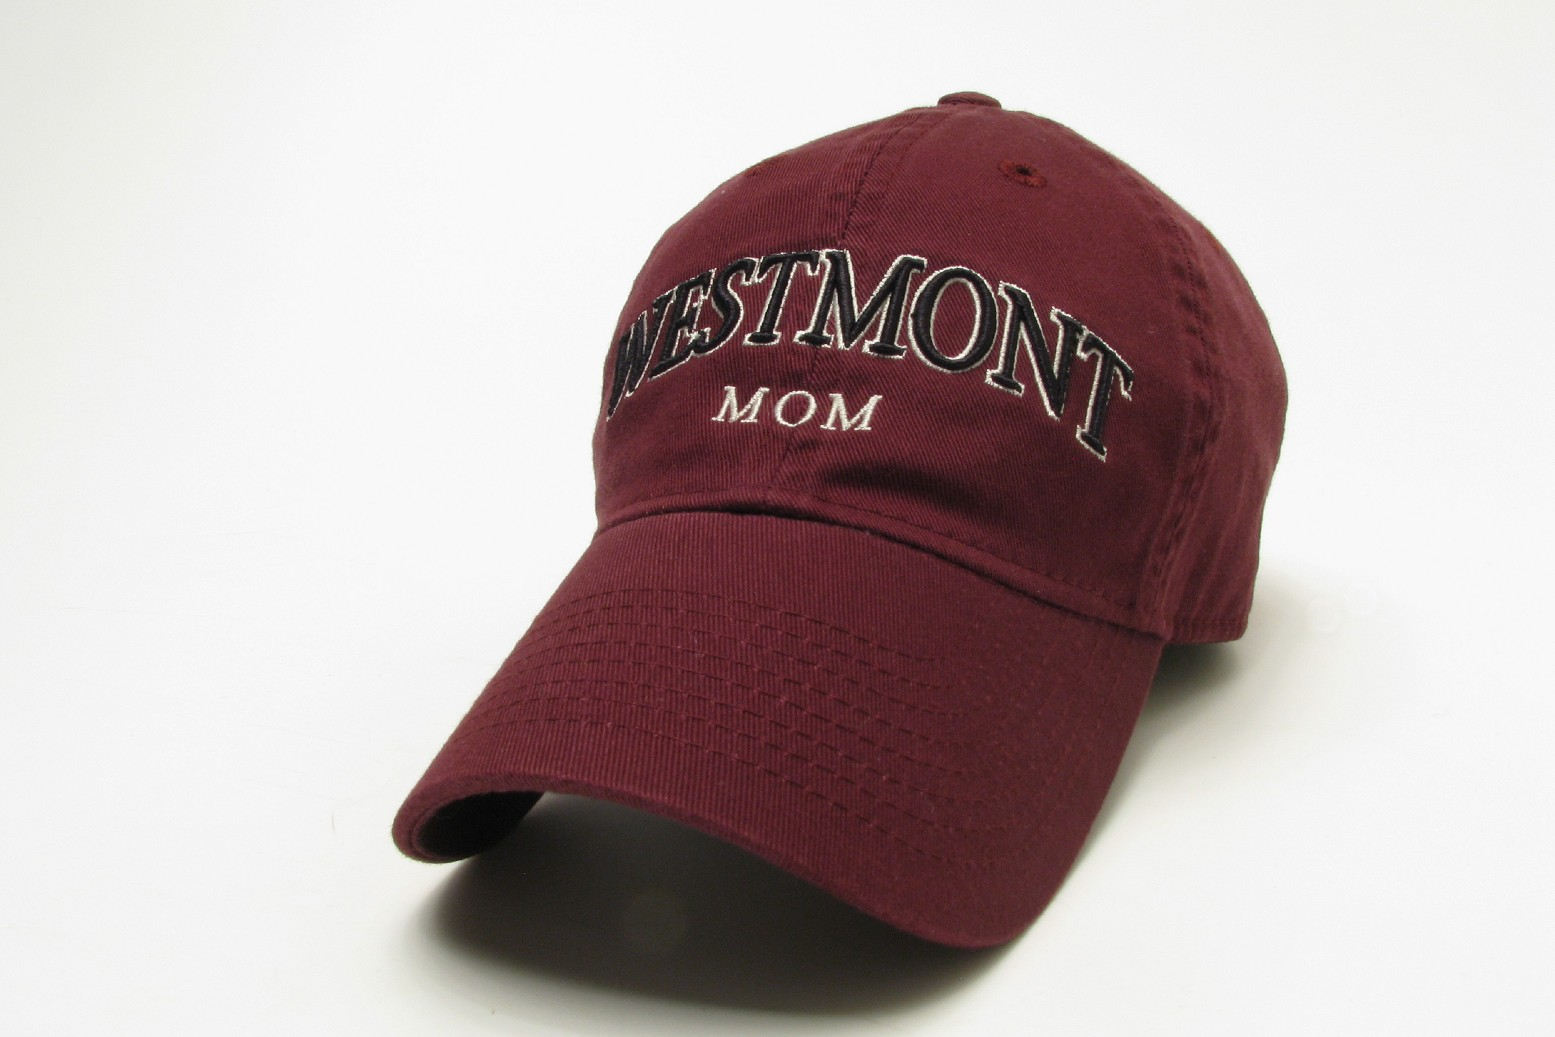 Image for the Legacy Hat Maroon OS Adj product